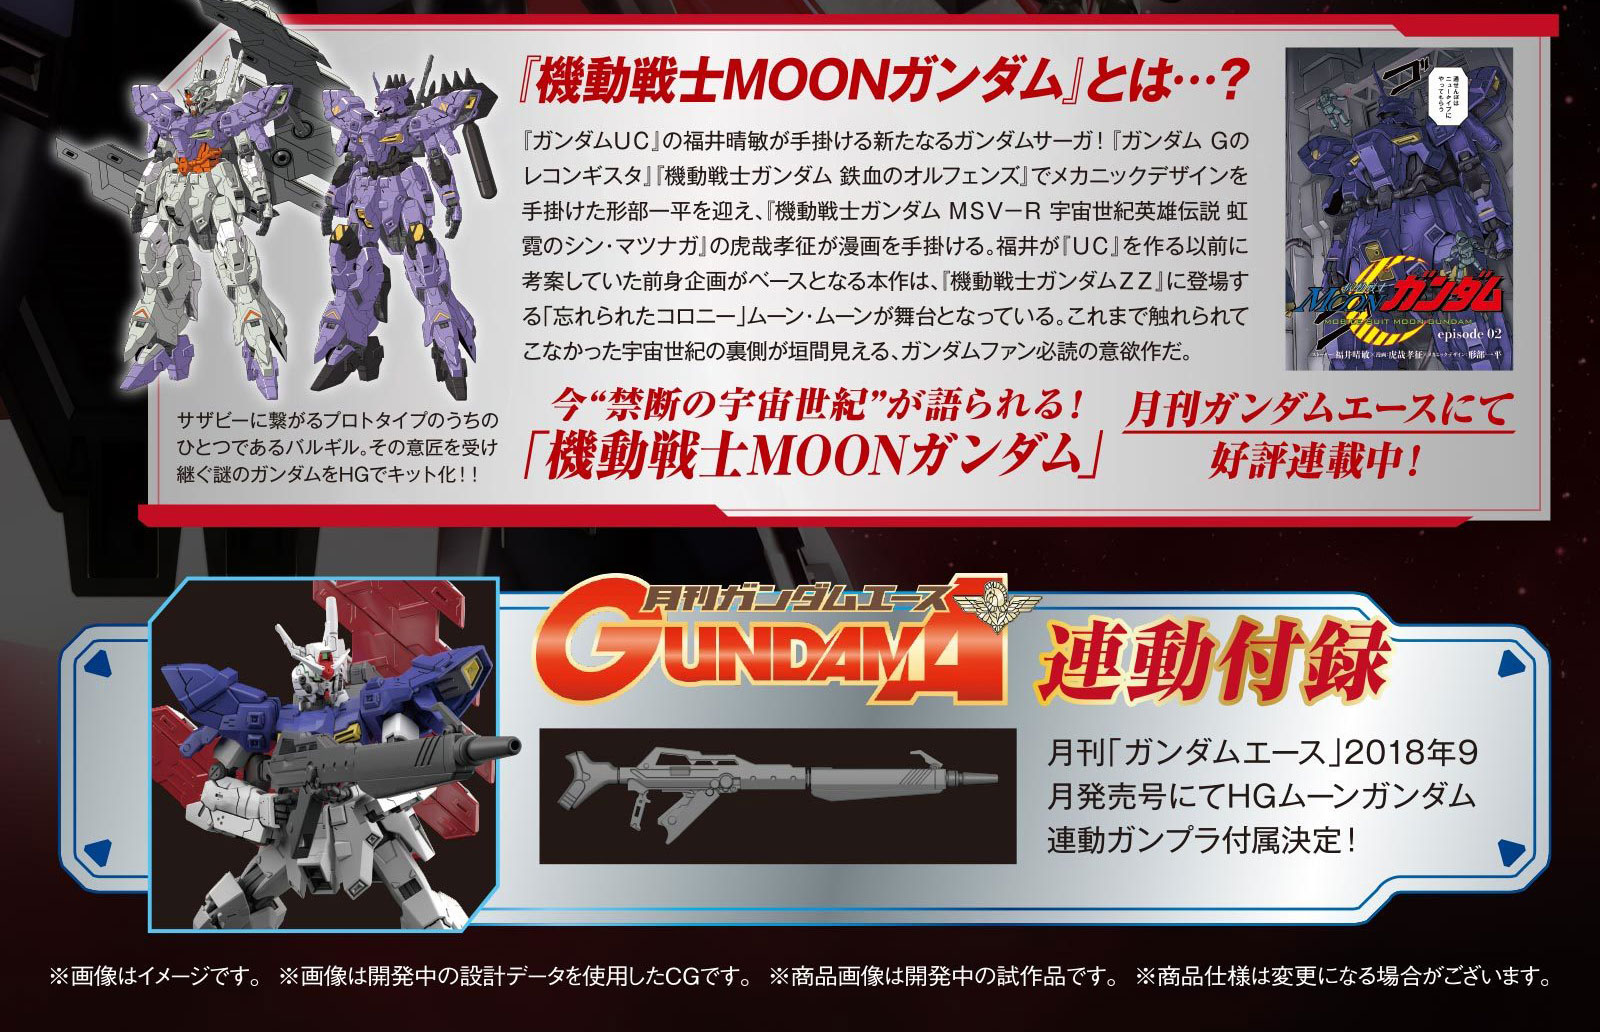 HGUC 1/144 Moon Gundam - Release Info, Box art and Official Images - Gundam Kits Collection News and Reviews